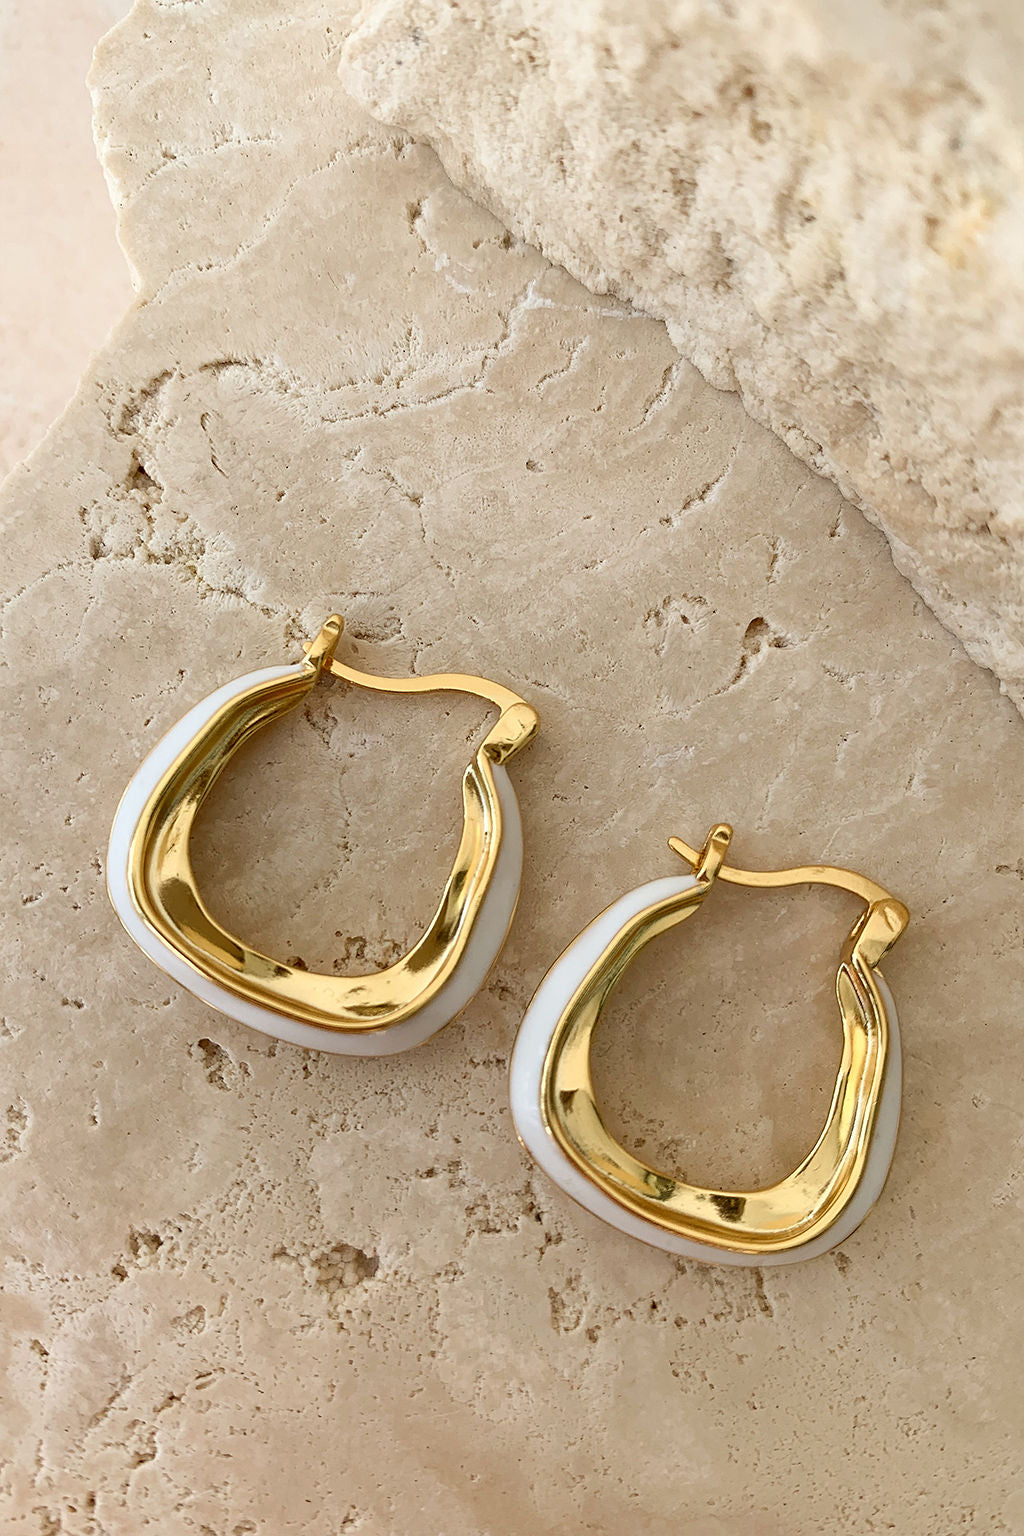 The Glam • 18k Gold Plated Hoop